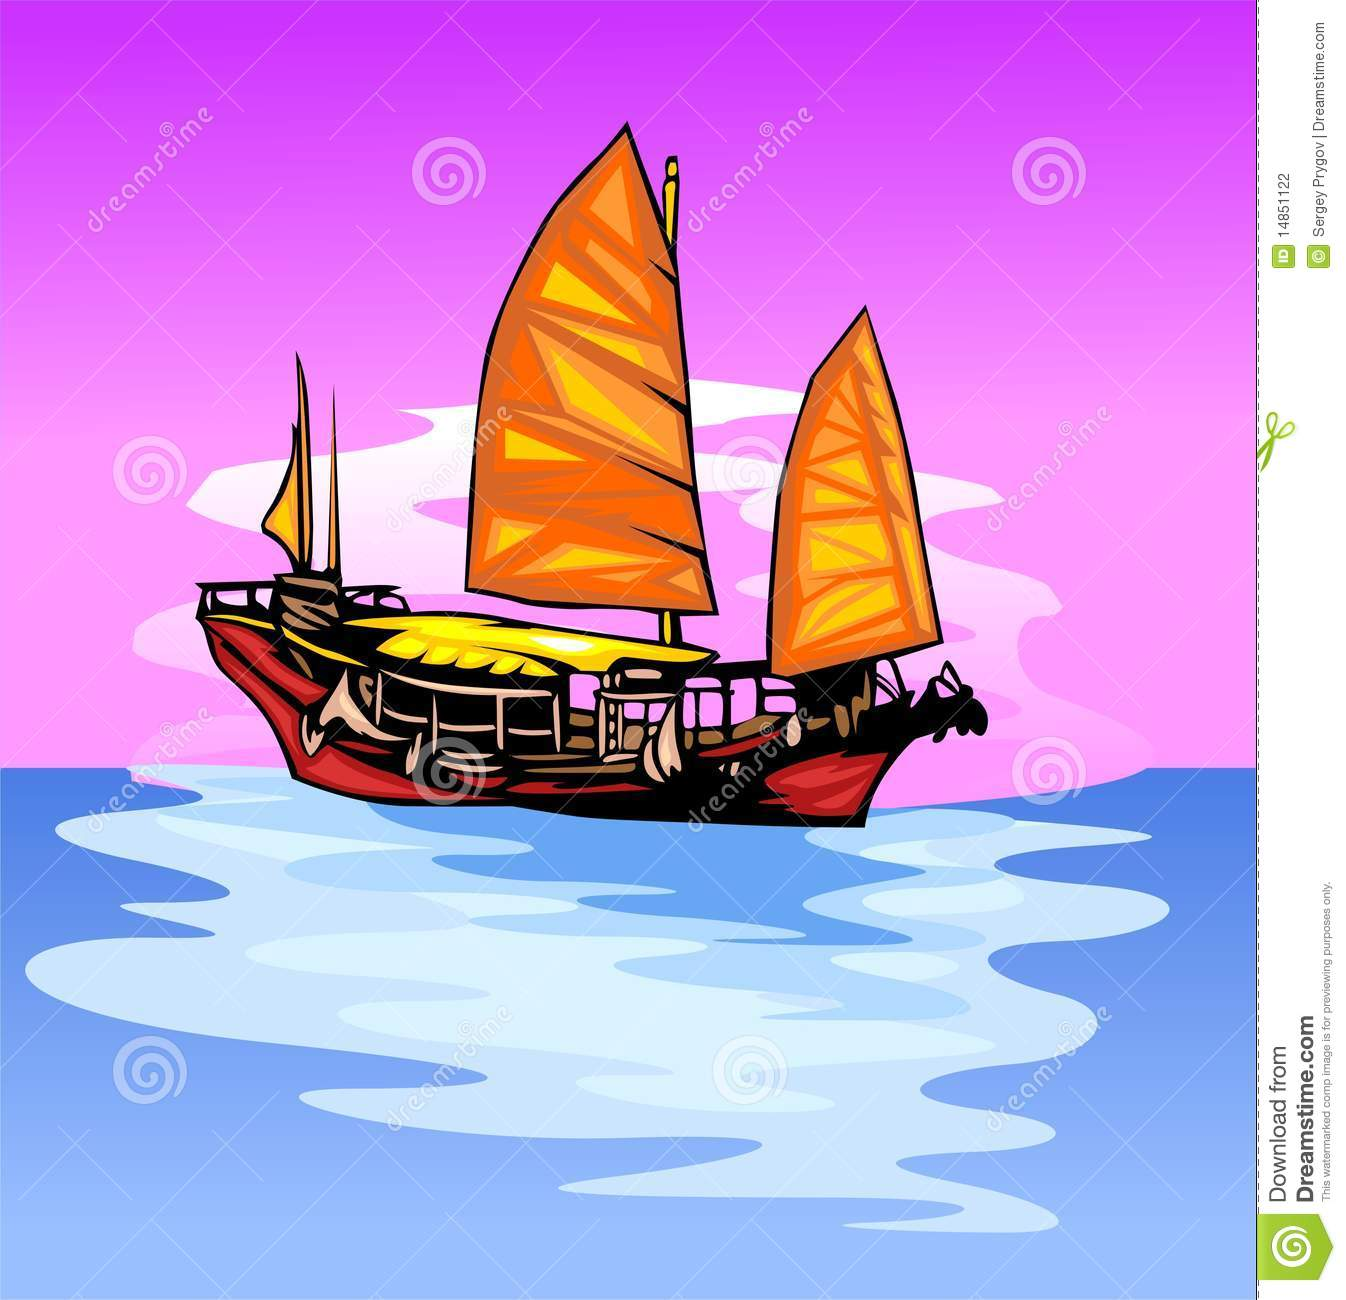 Ship with a sail.